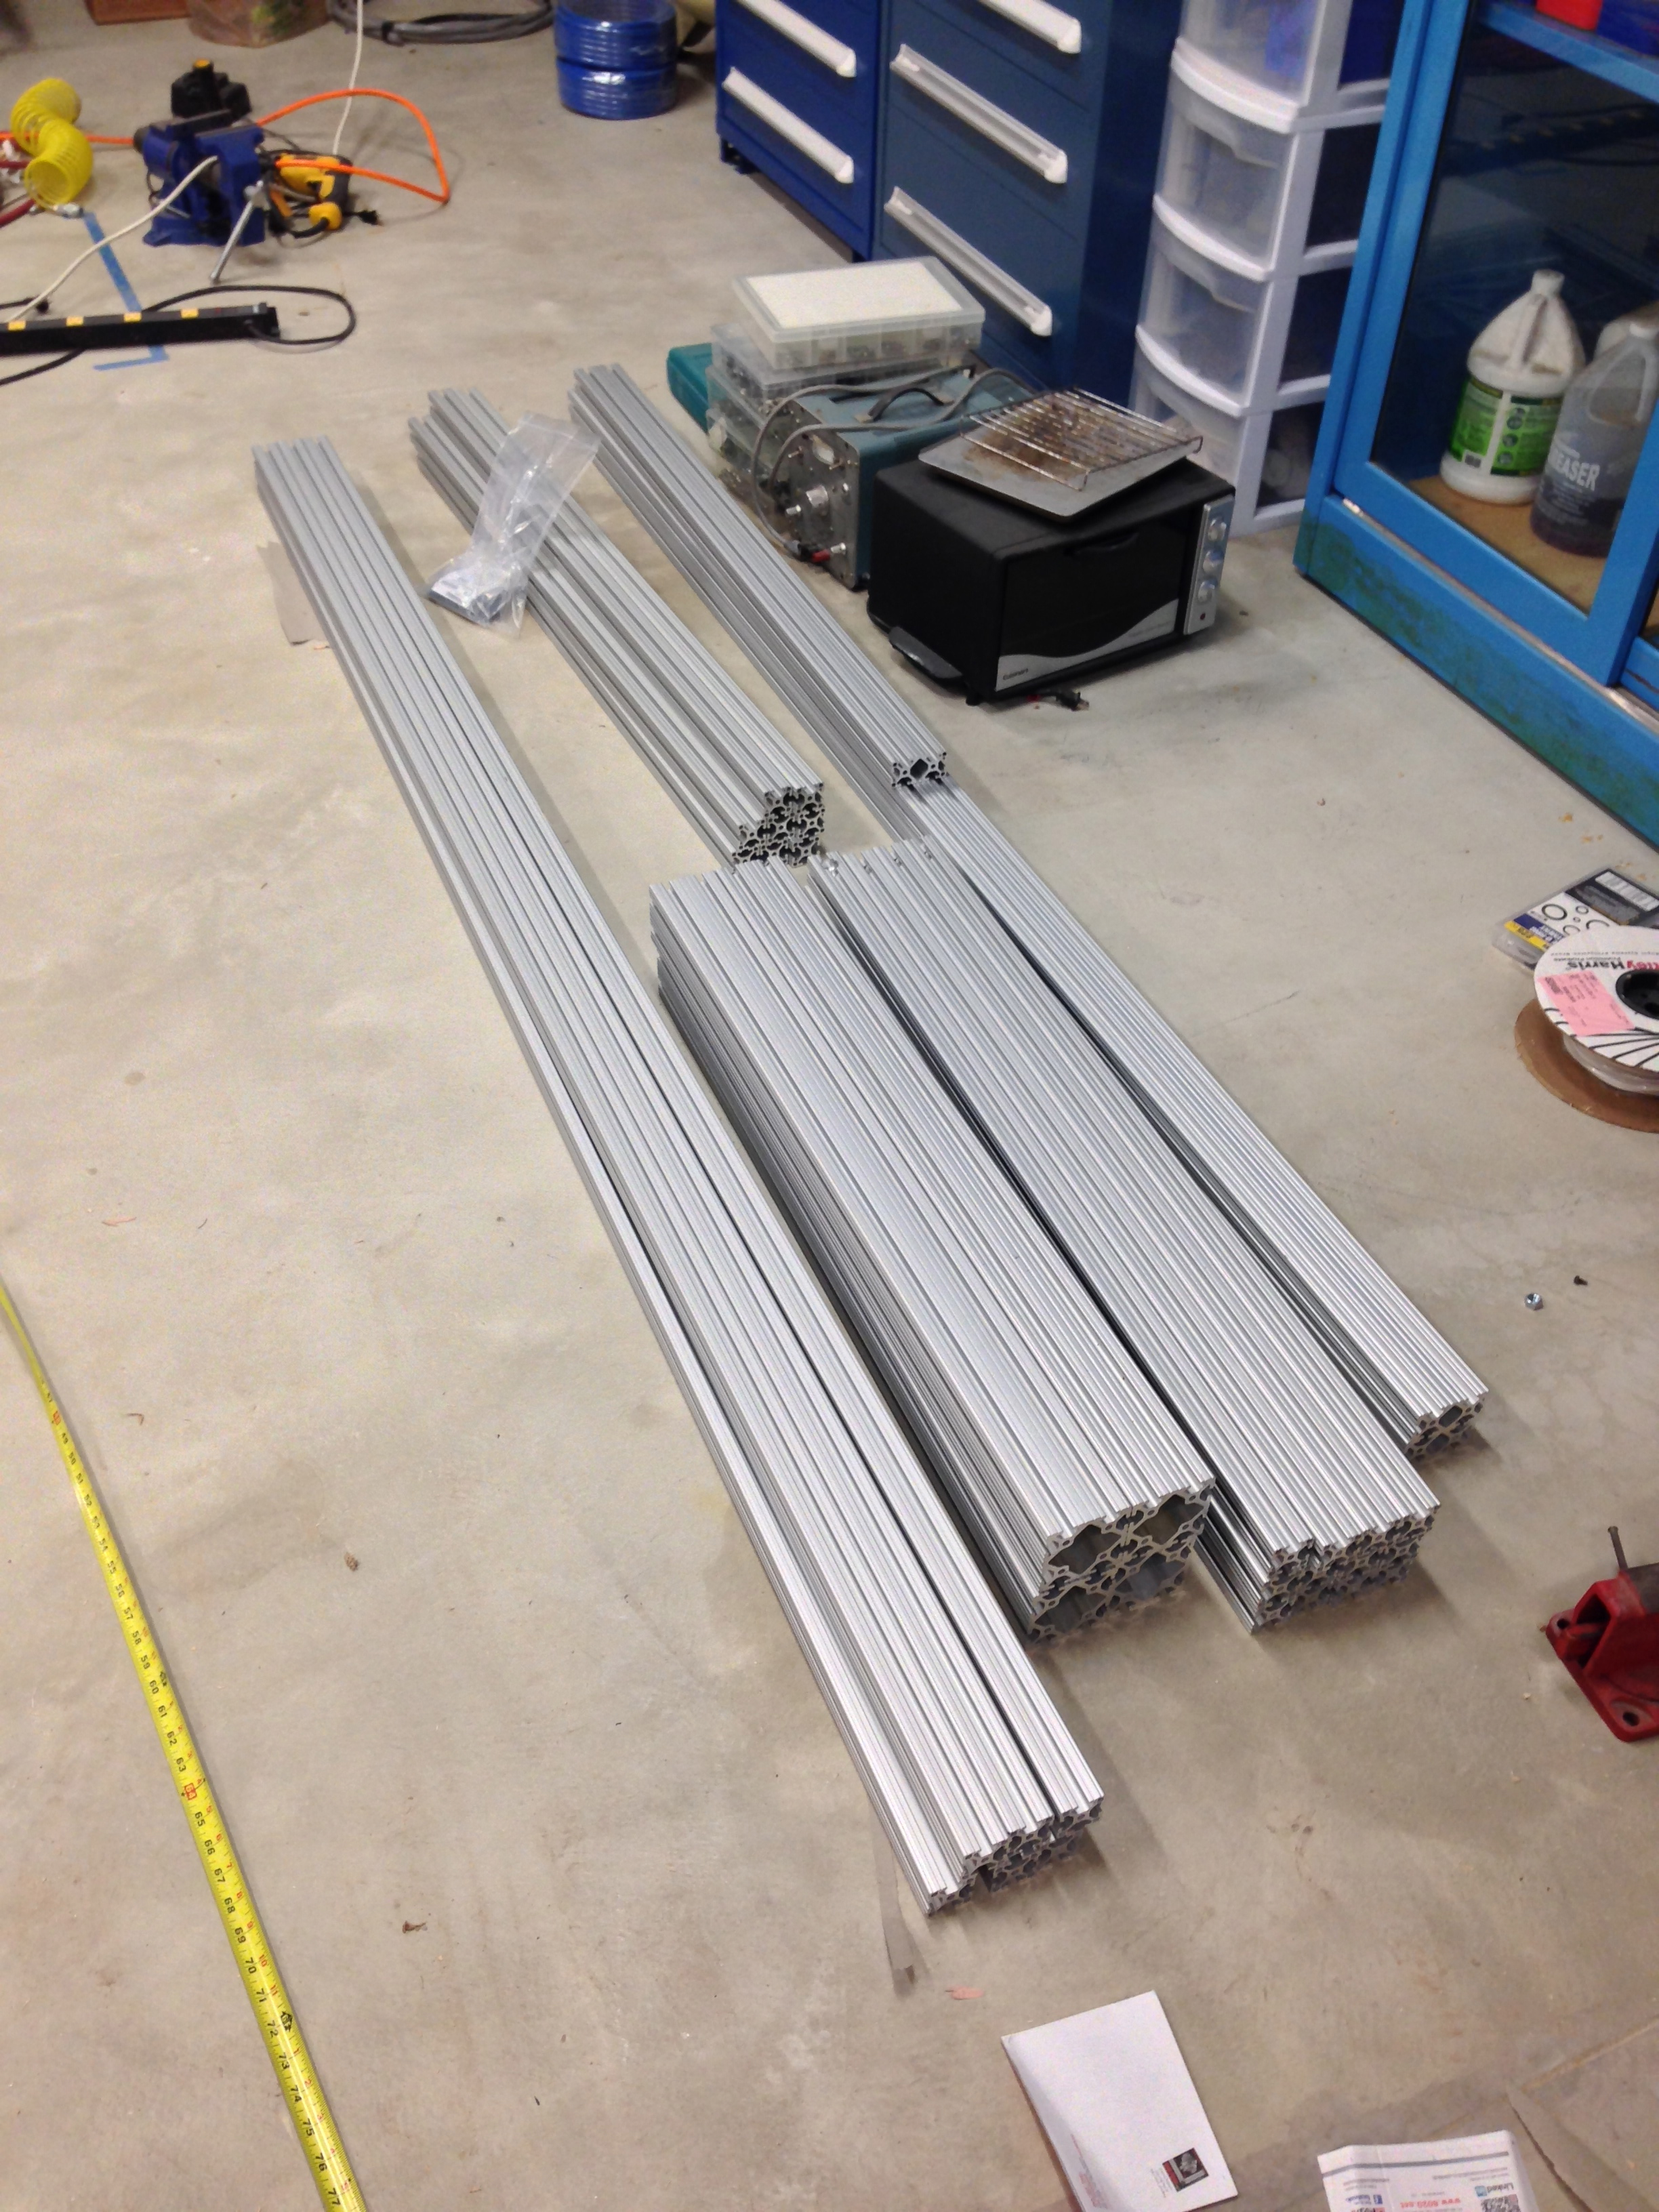 8020 aluminum for the work benches and sink counter legs.